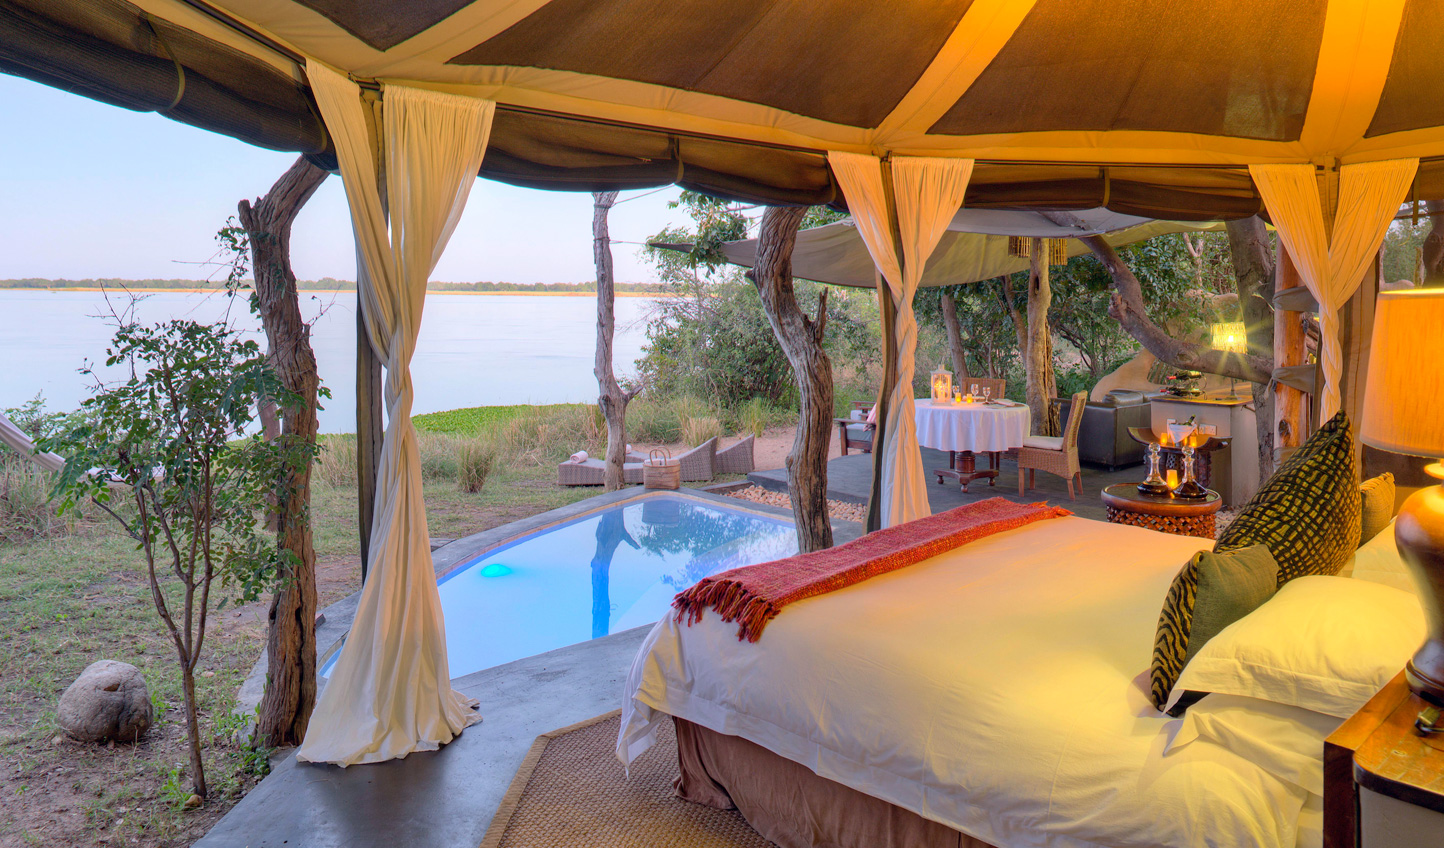 A room that immerses you in the Zambezi